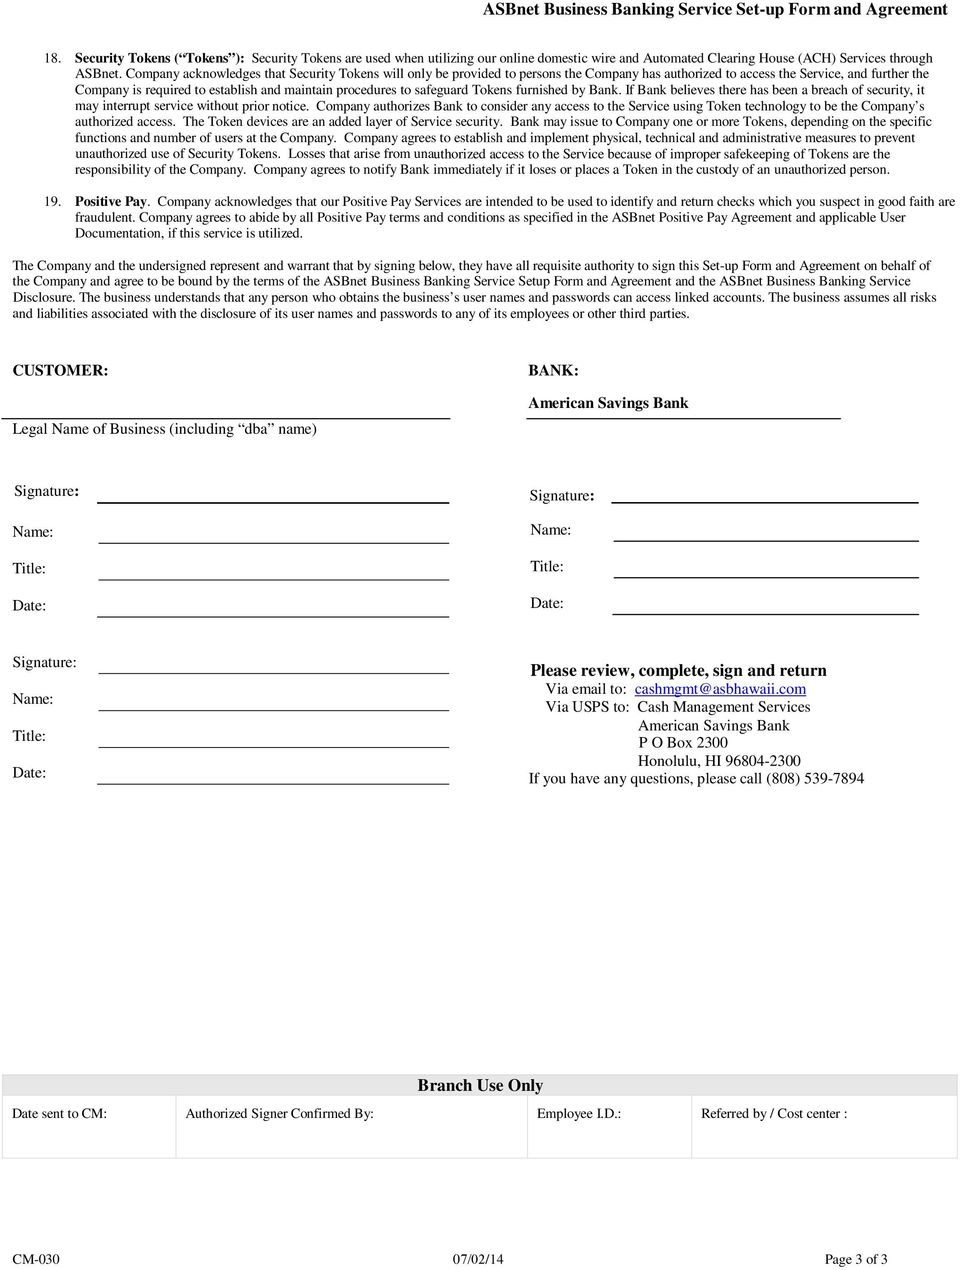 ASBnet Business Banking Service Set-up Form and Agreement - PDF